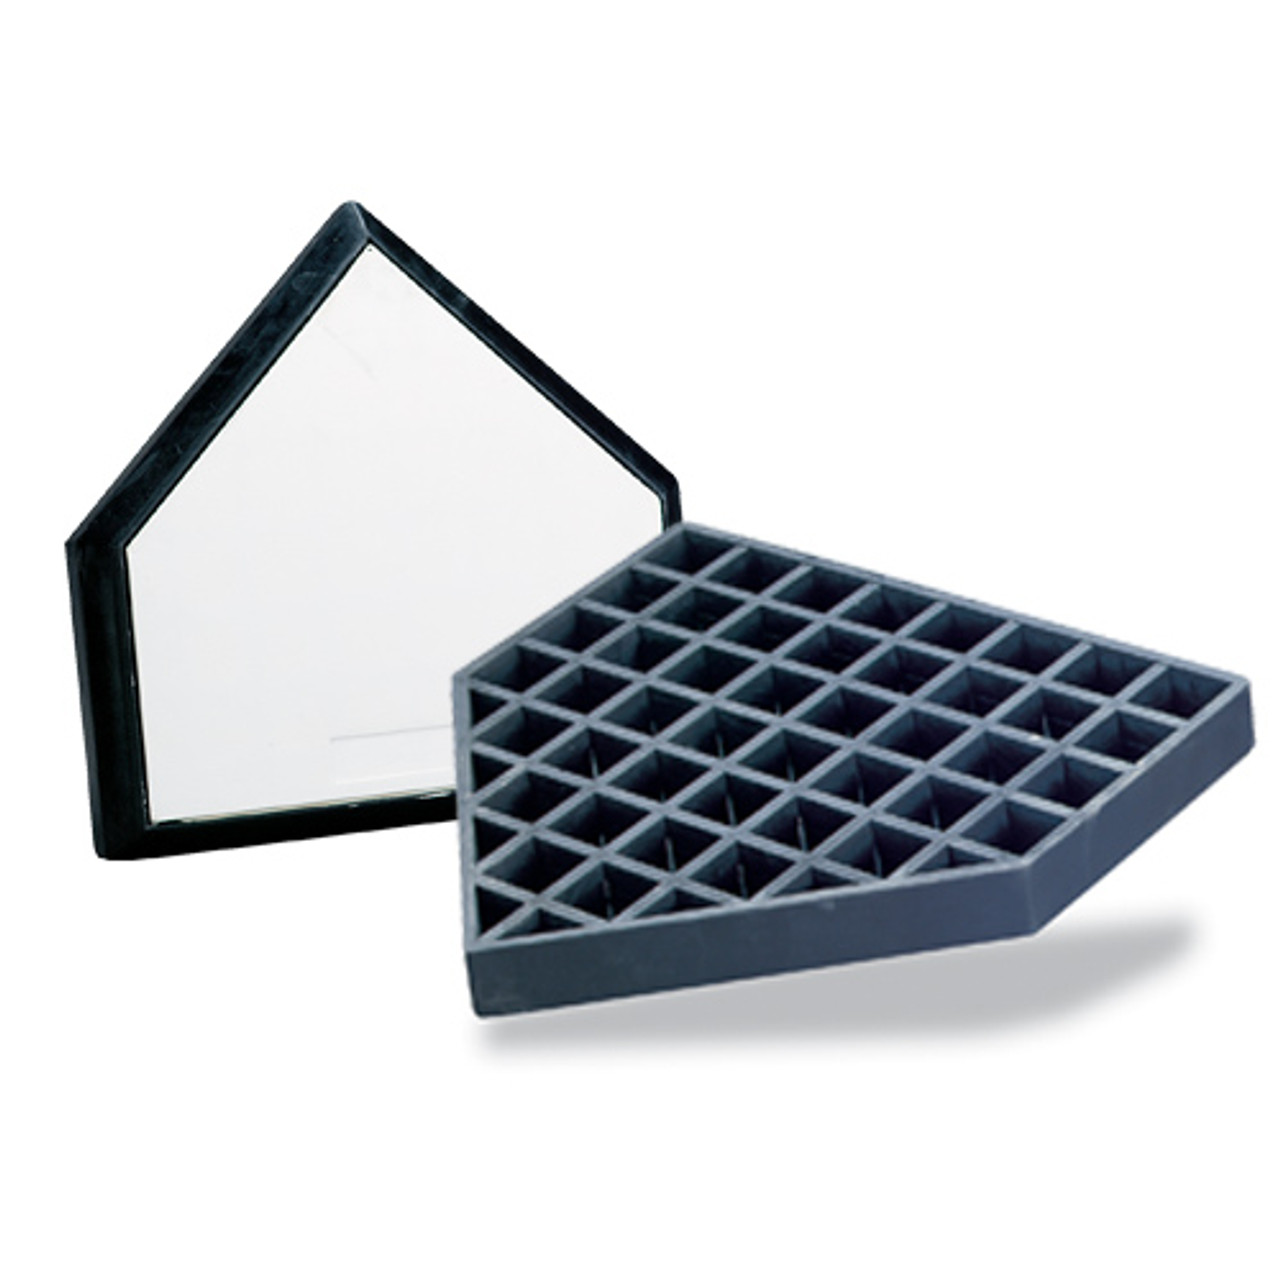 Baseball Waffle style in-ground home plate